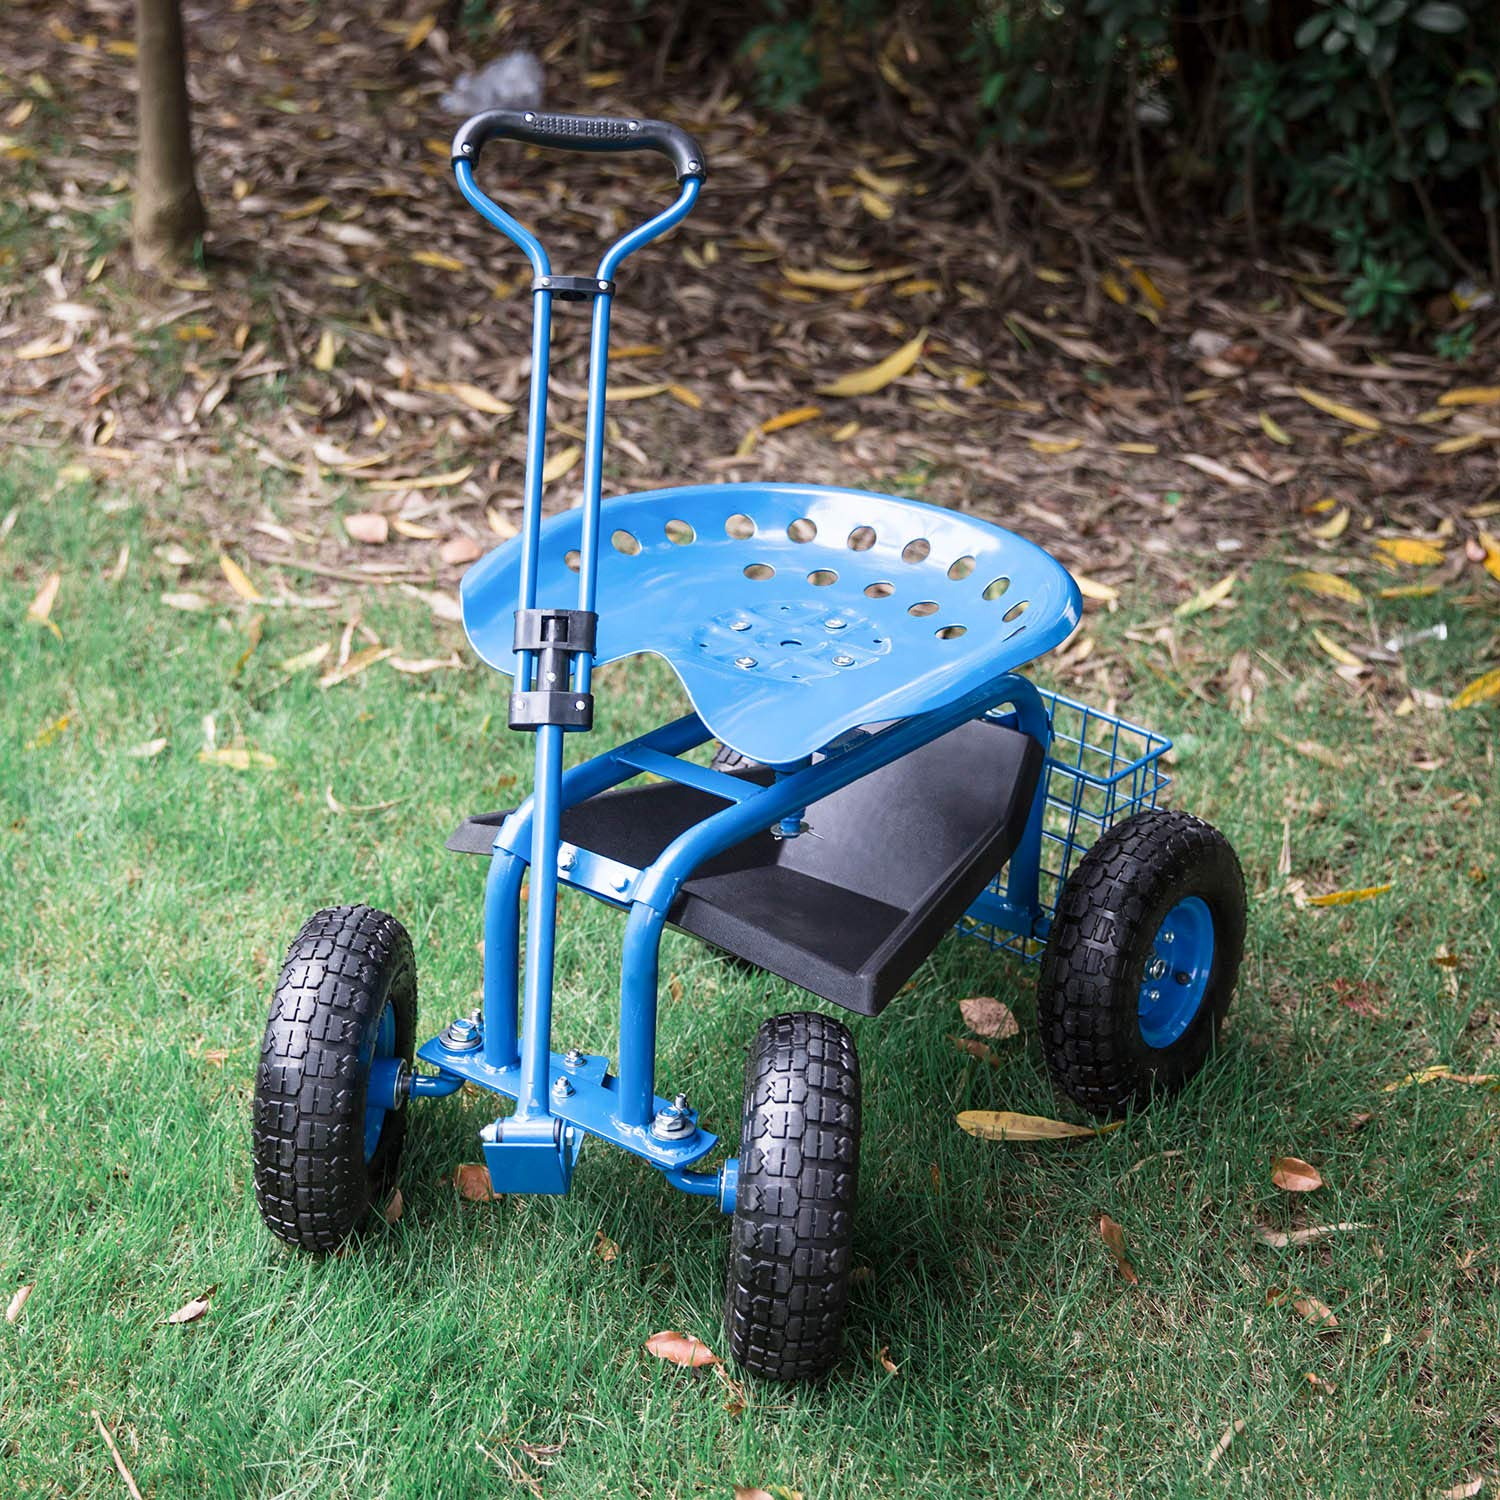 Kintness Garden Cart Rolling Work Seat With Tool Tray Outdoor Utility Lawn Patio Yard Wagon Scooter For Planting Blue Garden Outdoor Dprd Tasikmalayakab Go Id